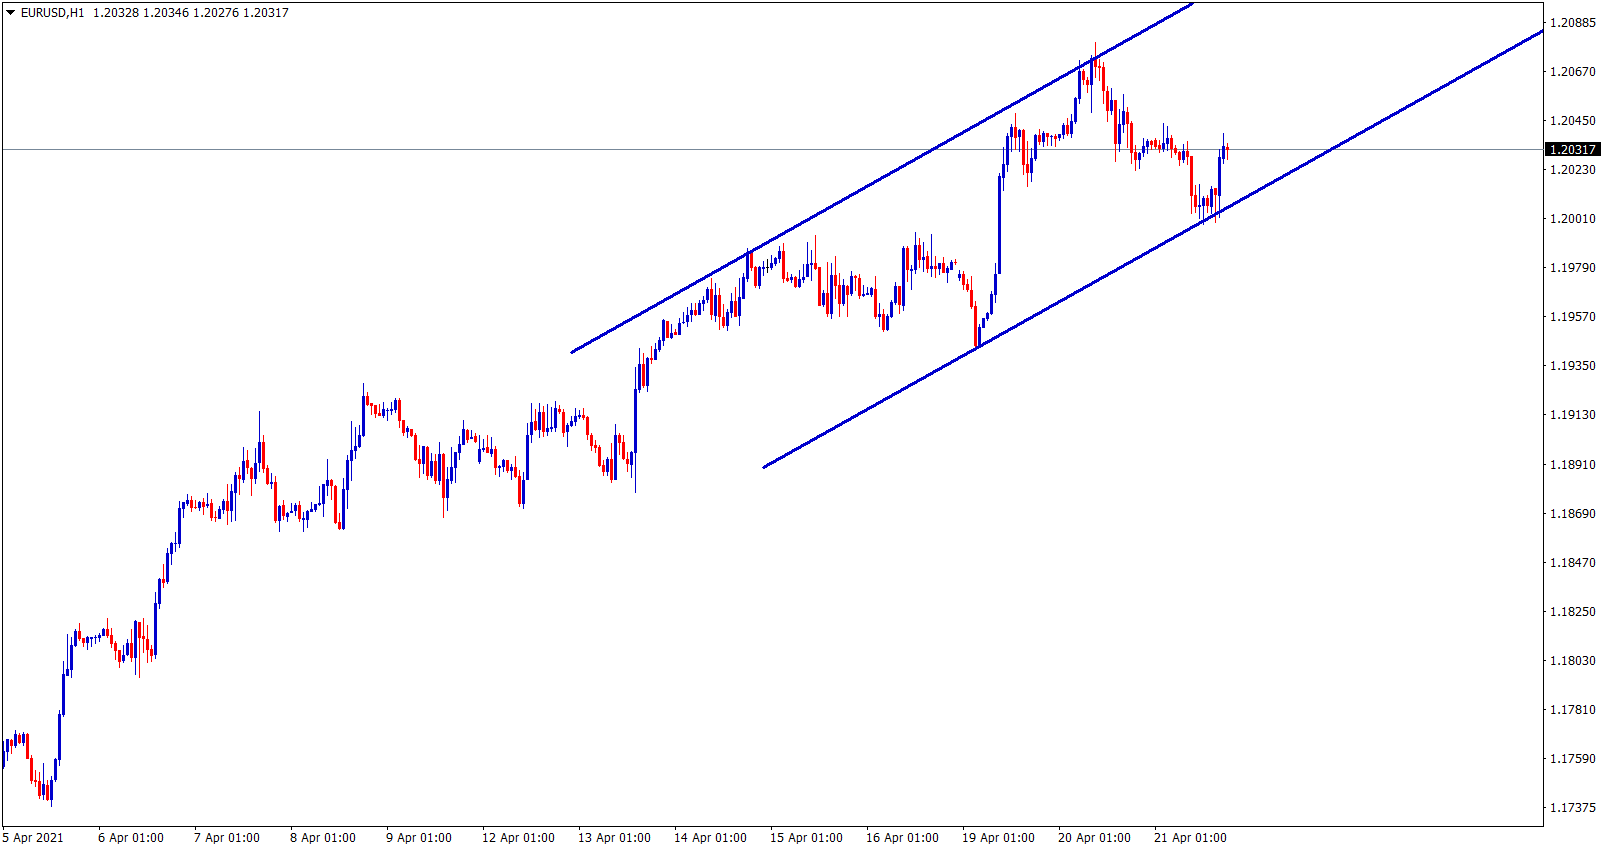 EURUSD moving in an uptrend line